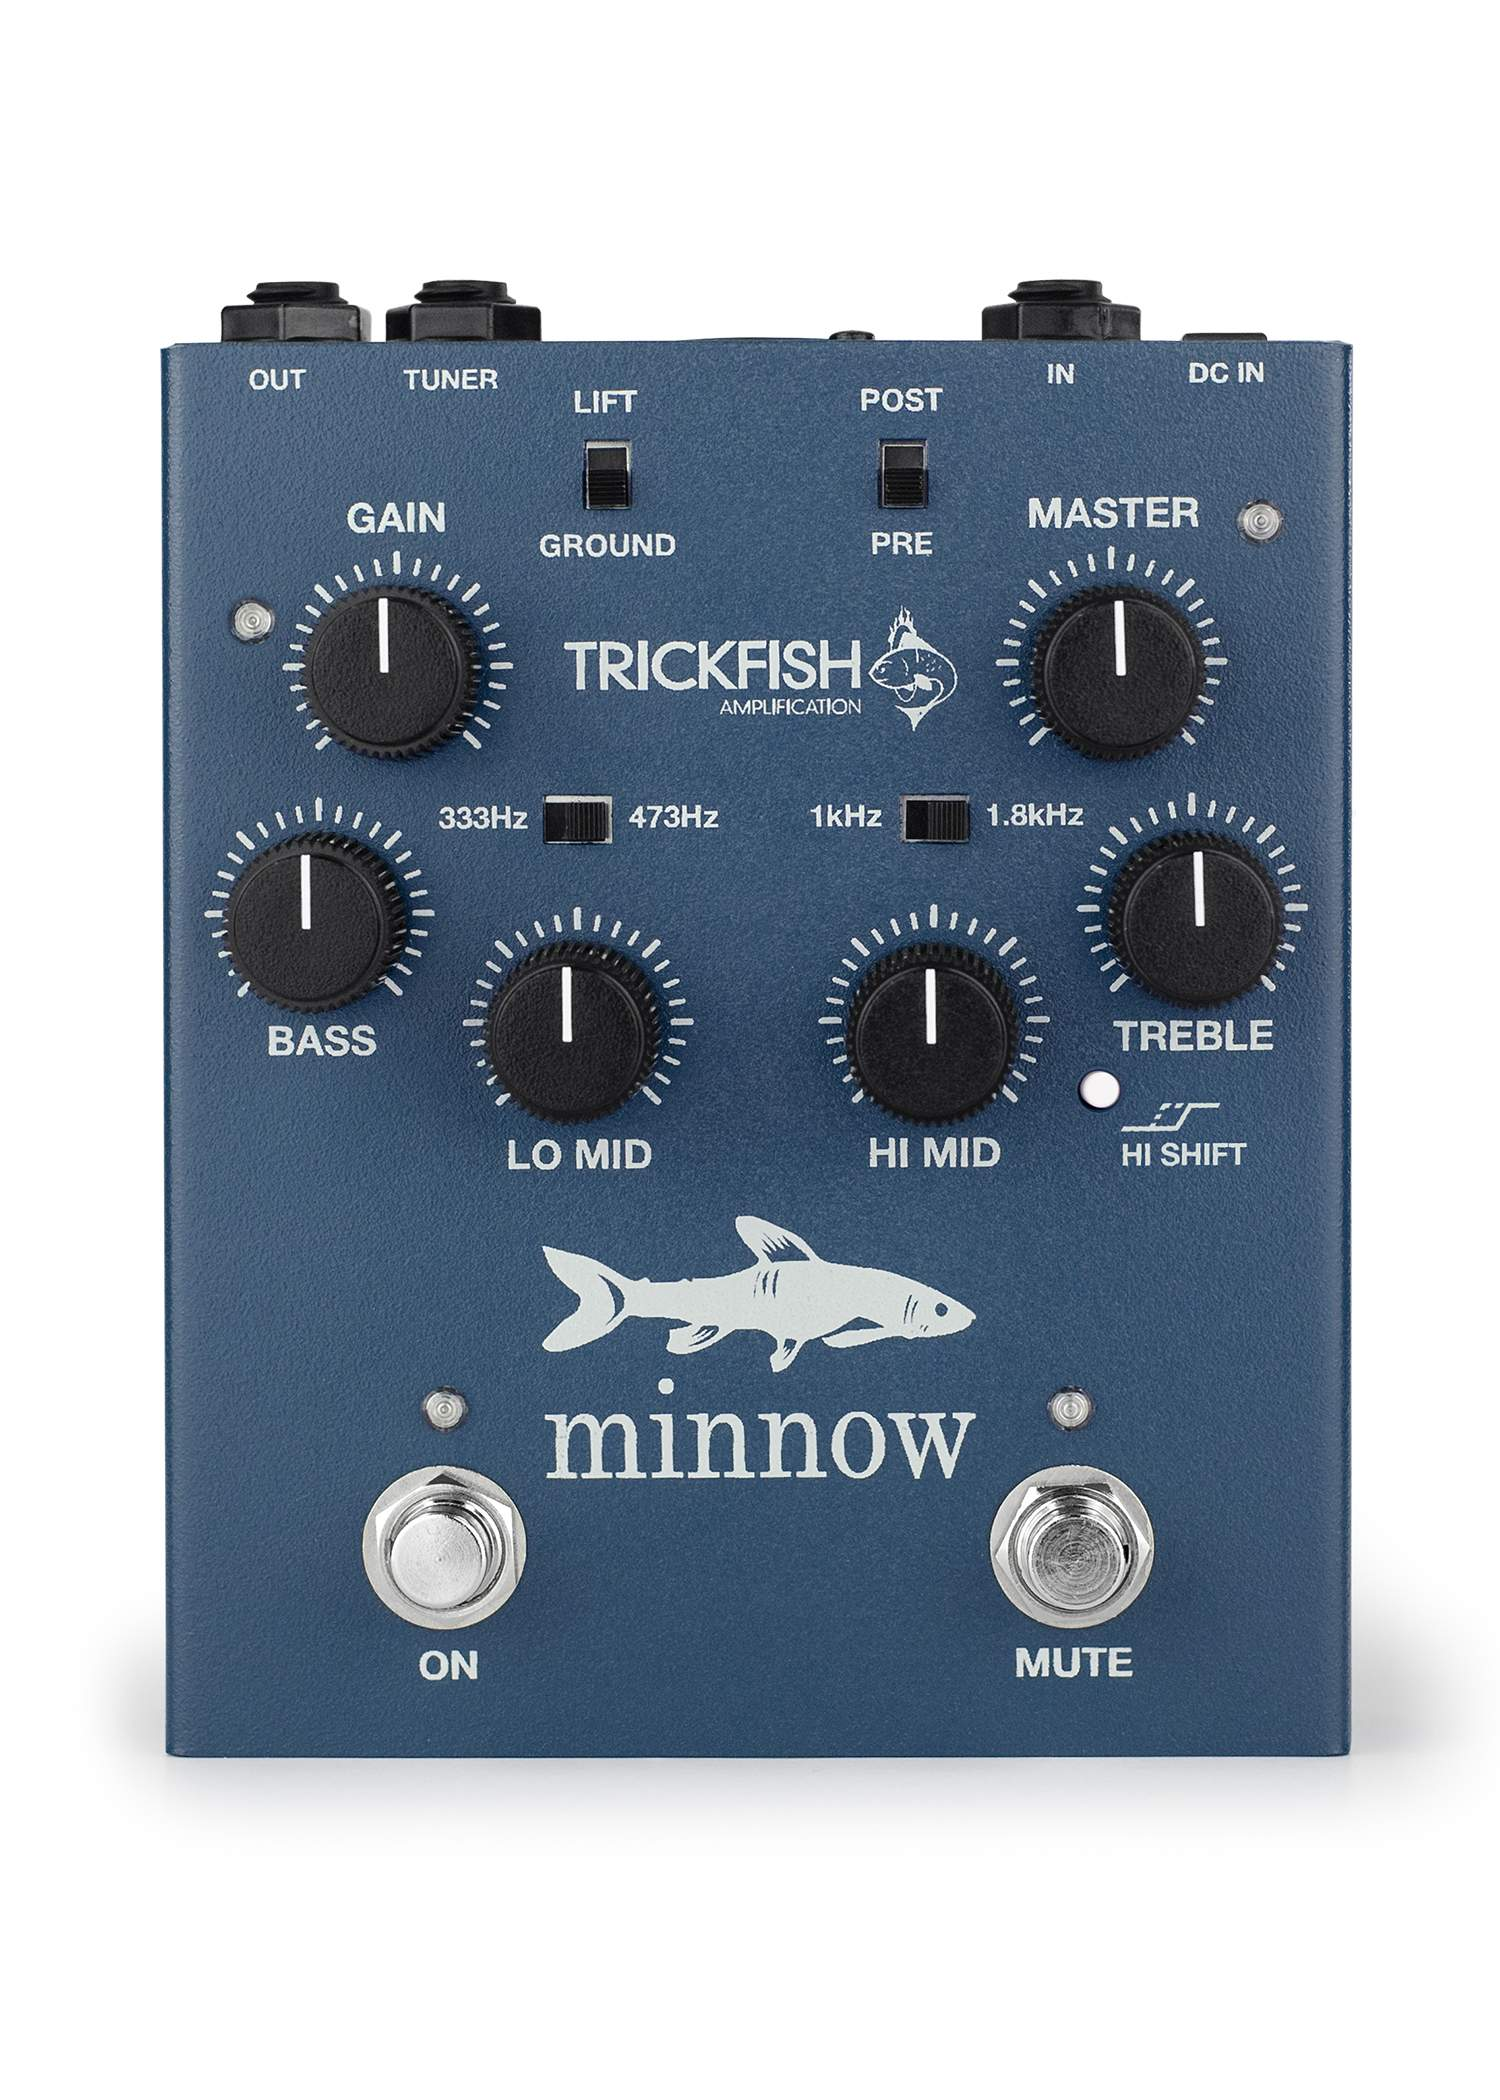 trickfish-amplification-minnow-release.